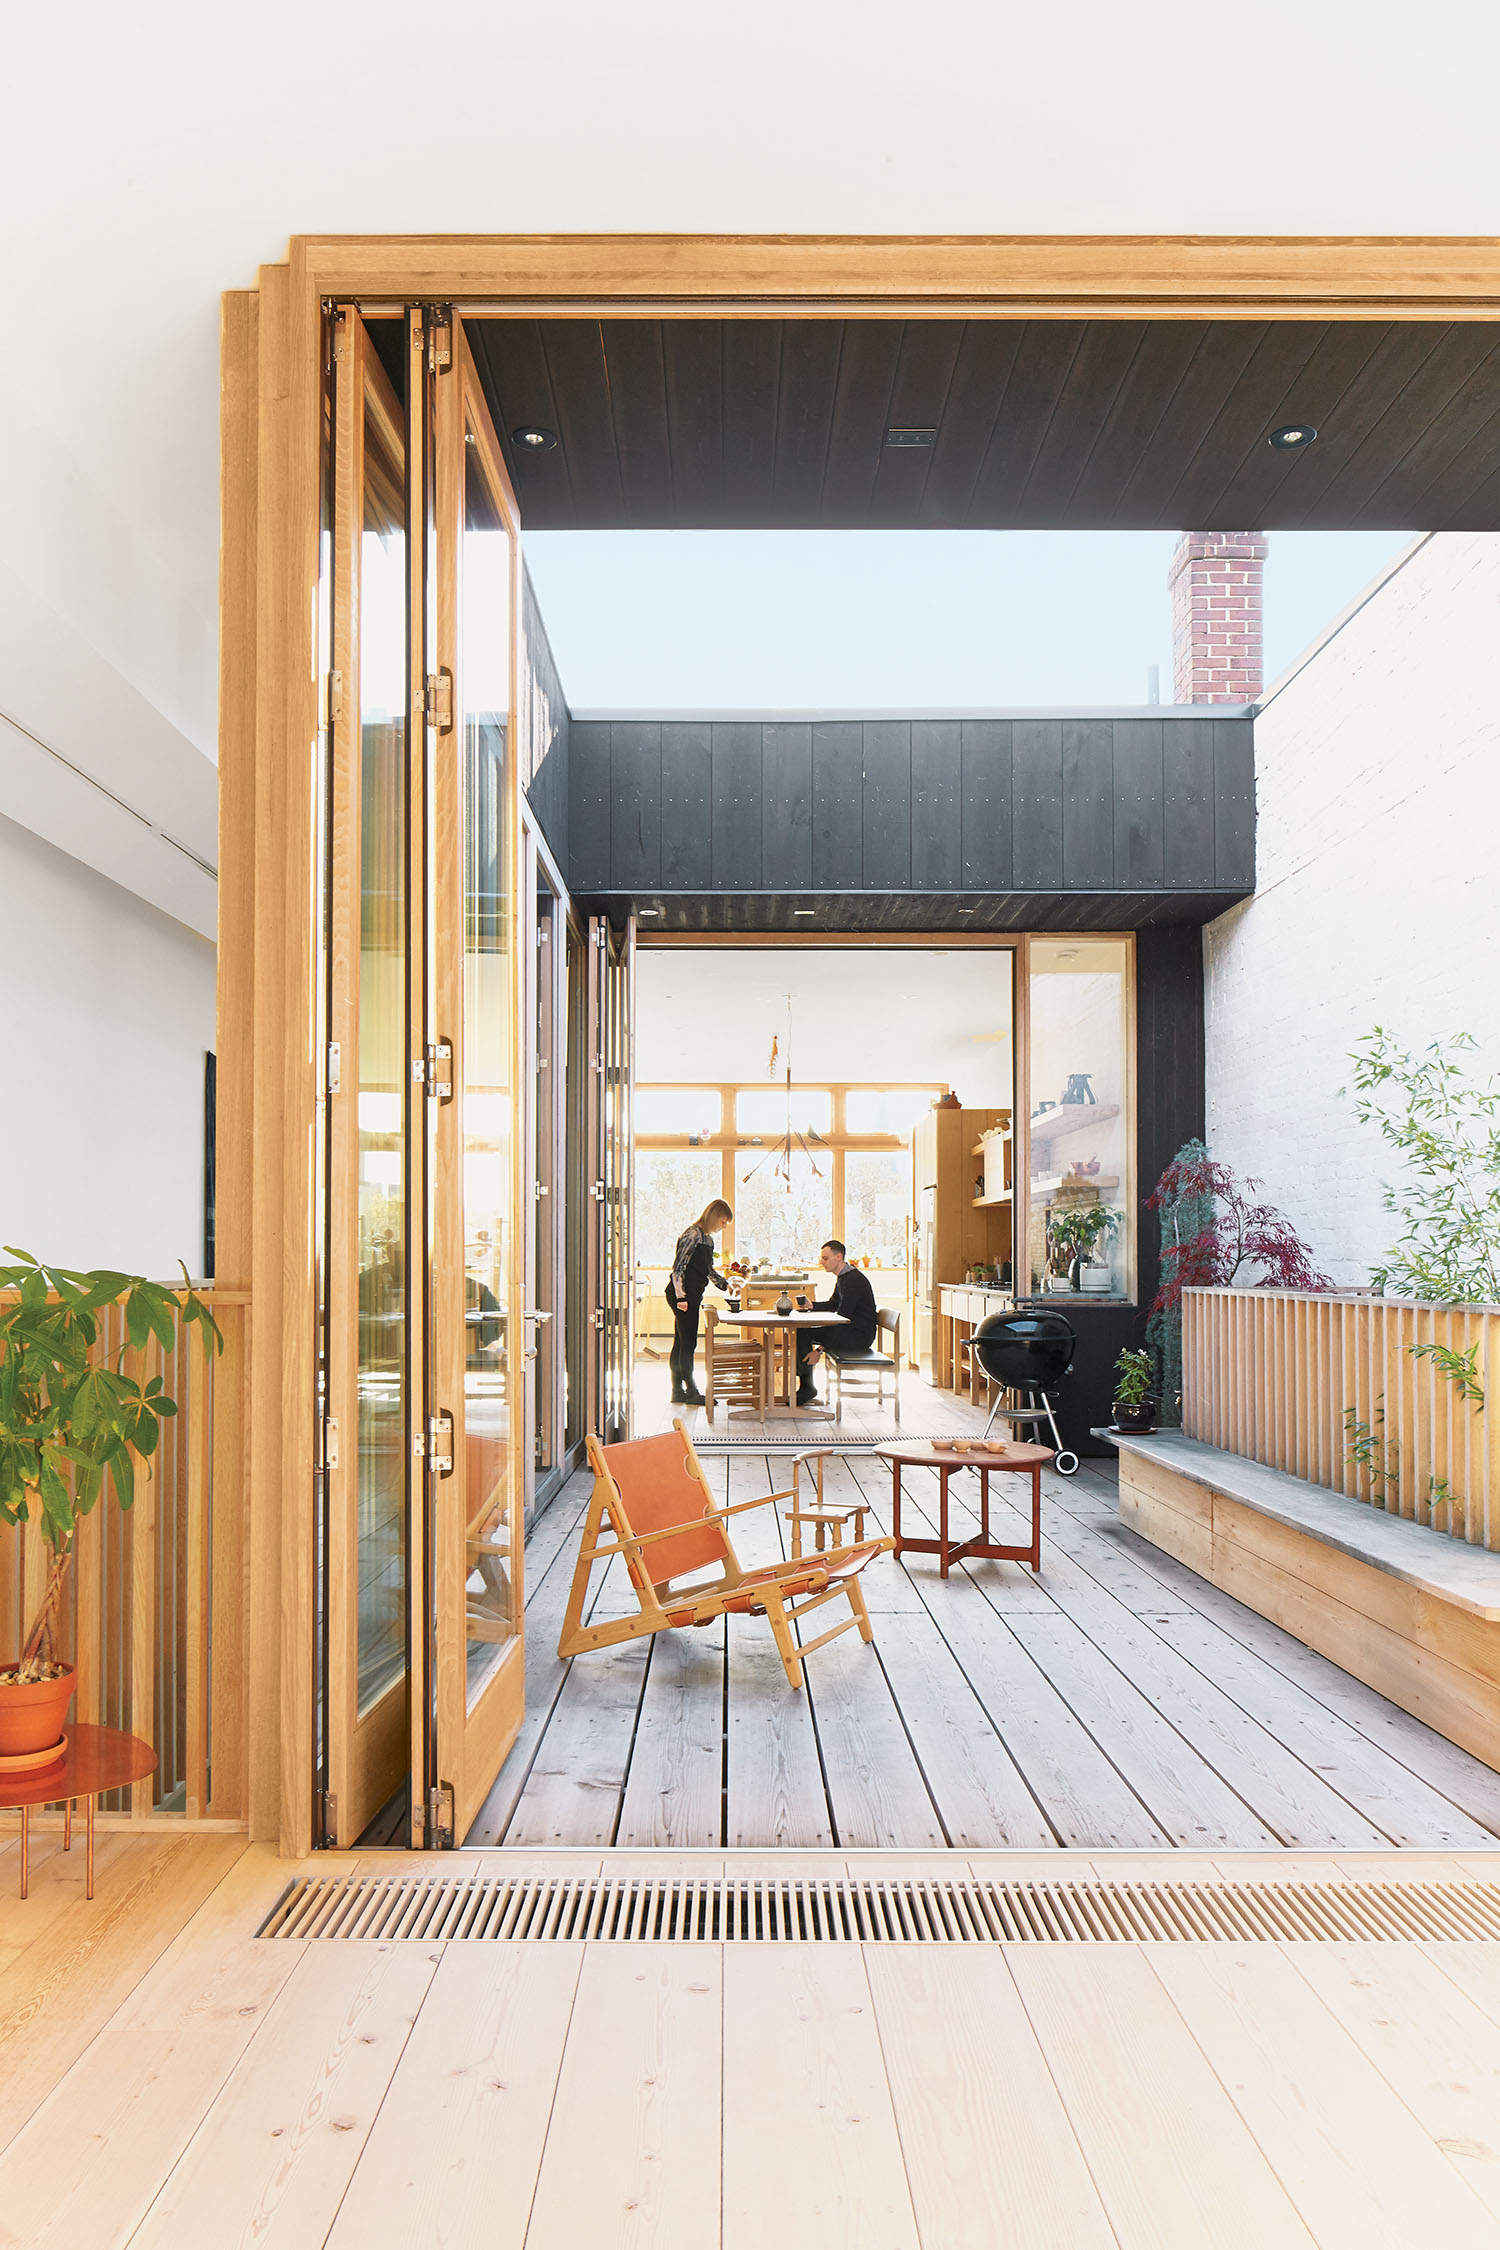 mjolk boutique owners renovate their Toronto dwelling exterior deck